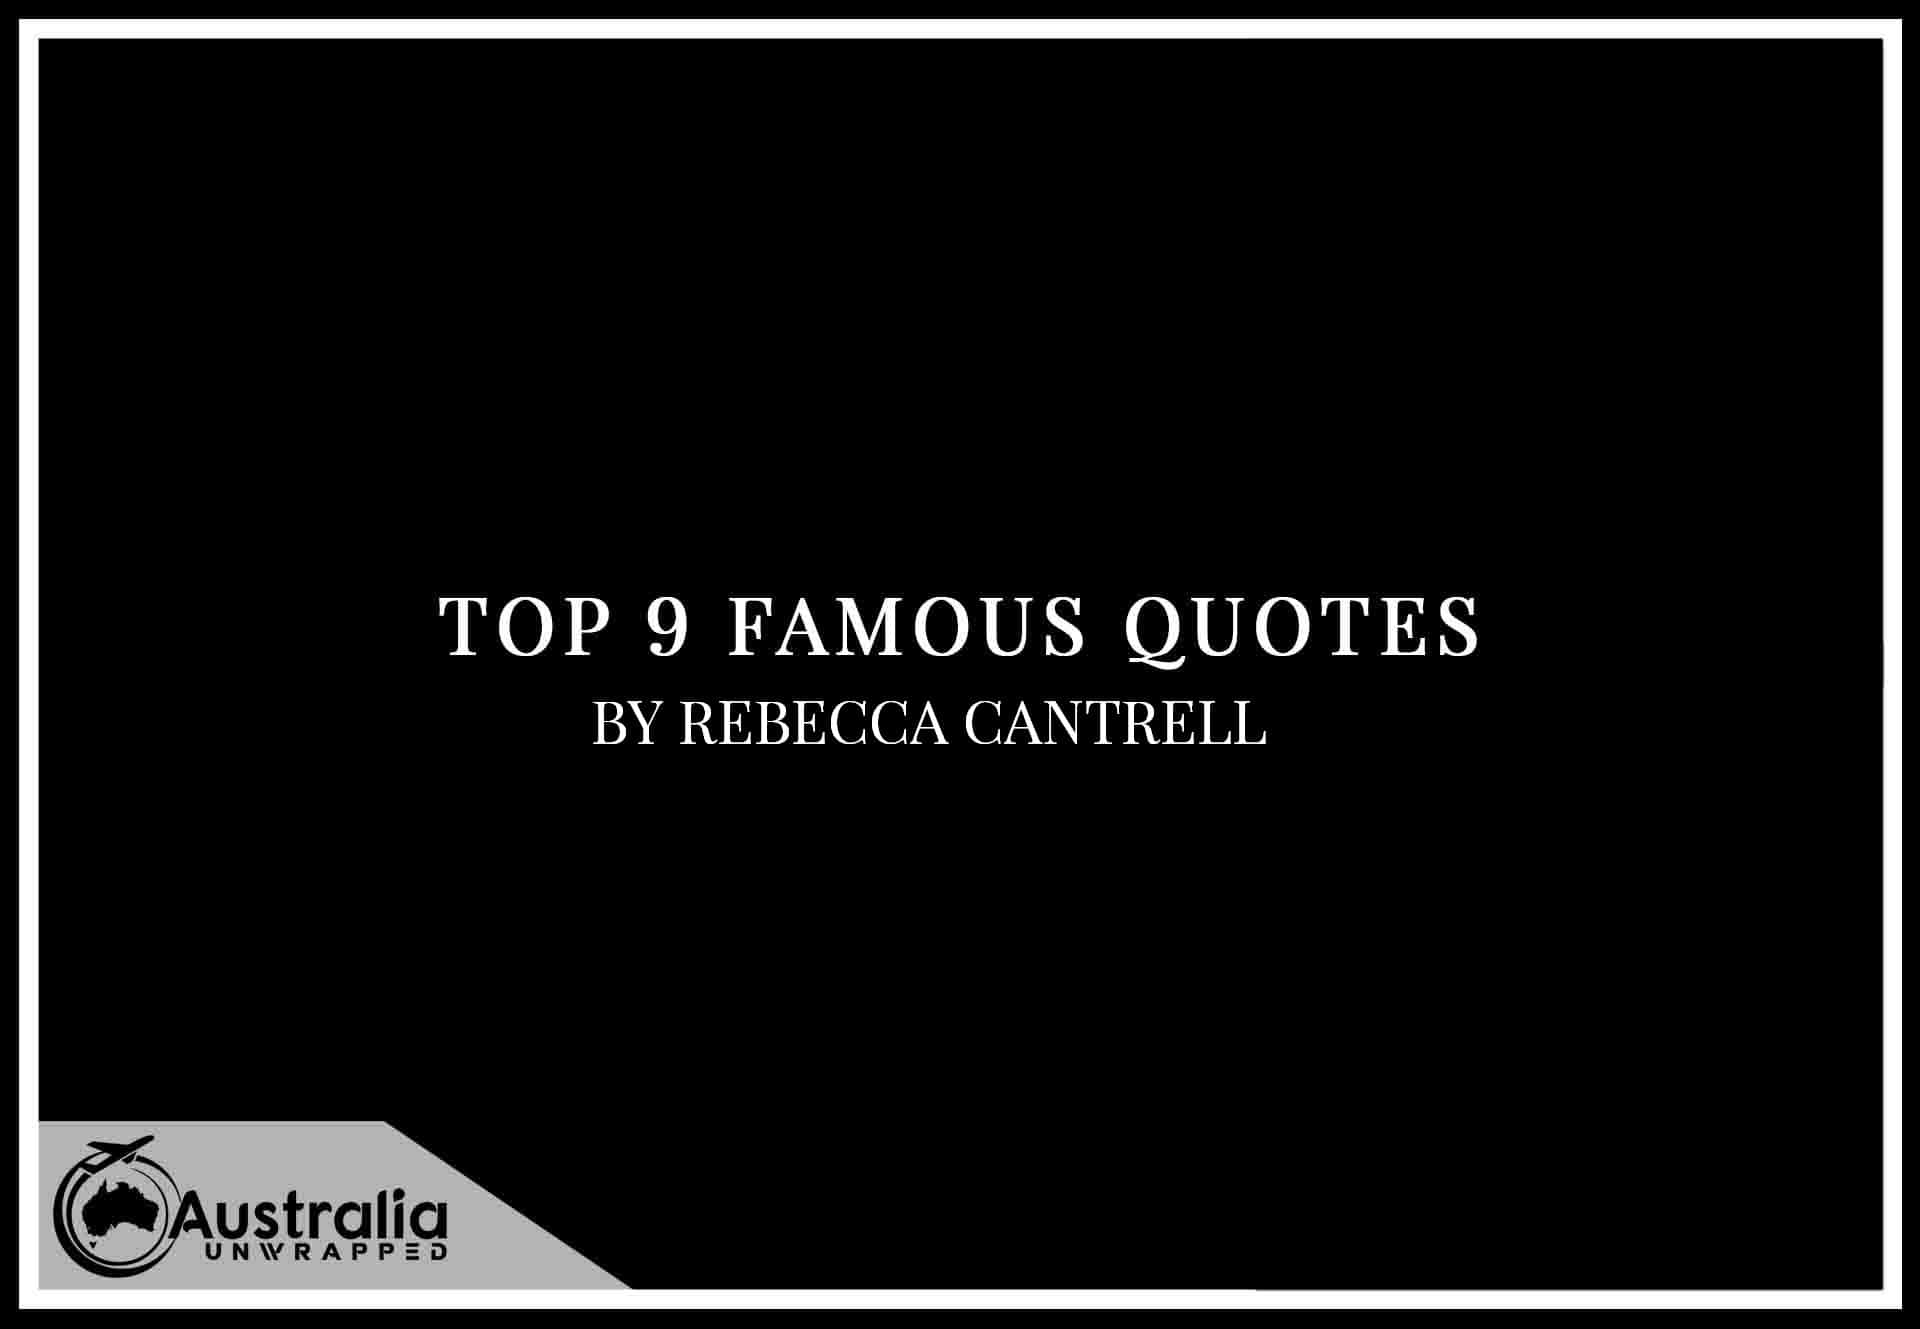 Top 9 Famous Quotes by Author Rebecca Cantrell